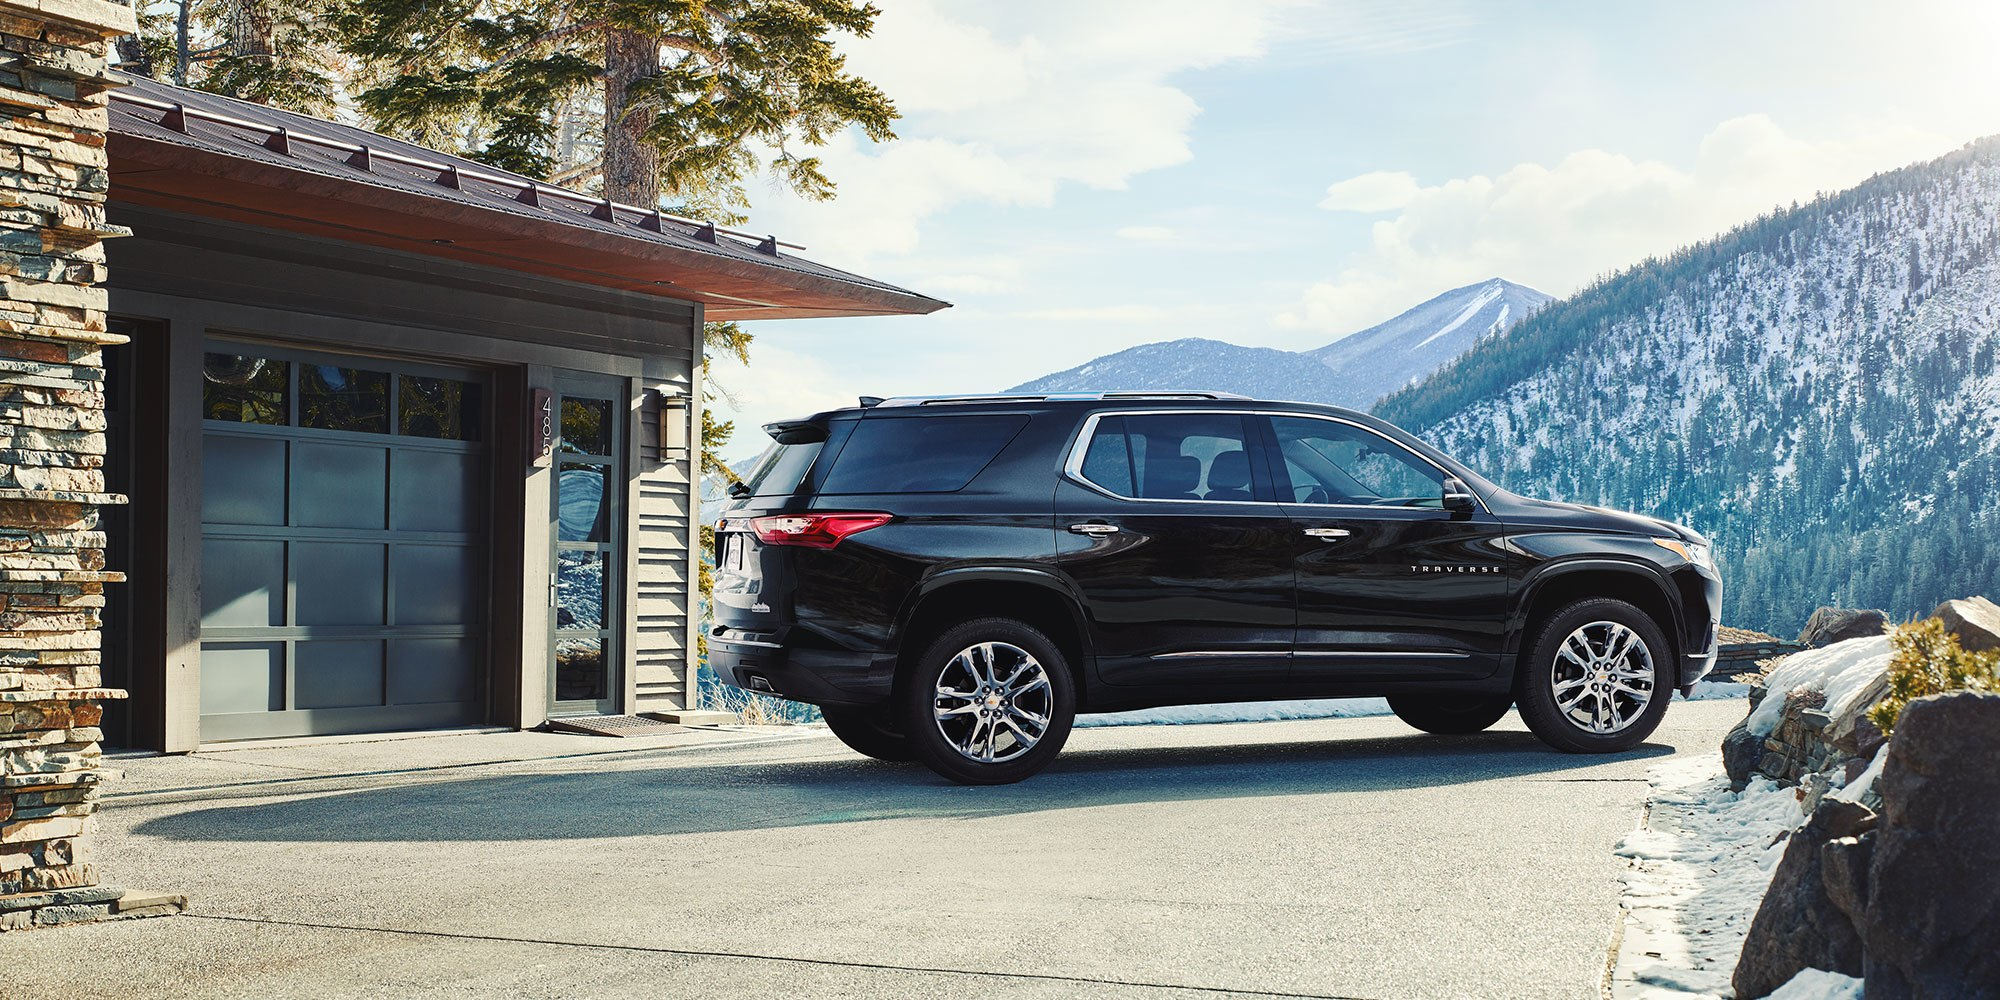 2019 Chevrolet Traverse Leasing near Burbank, IL